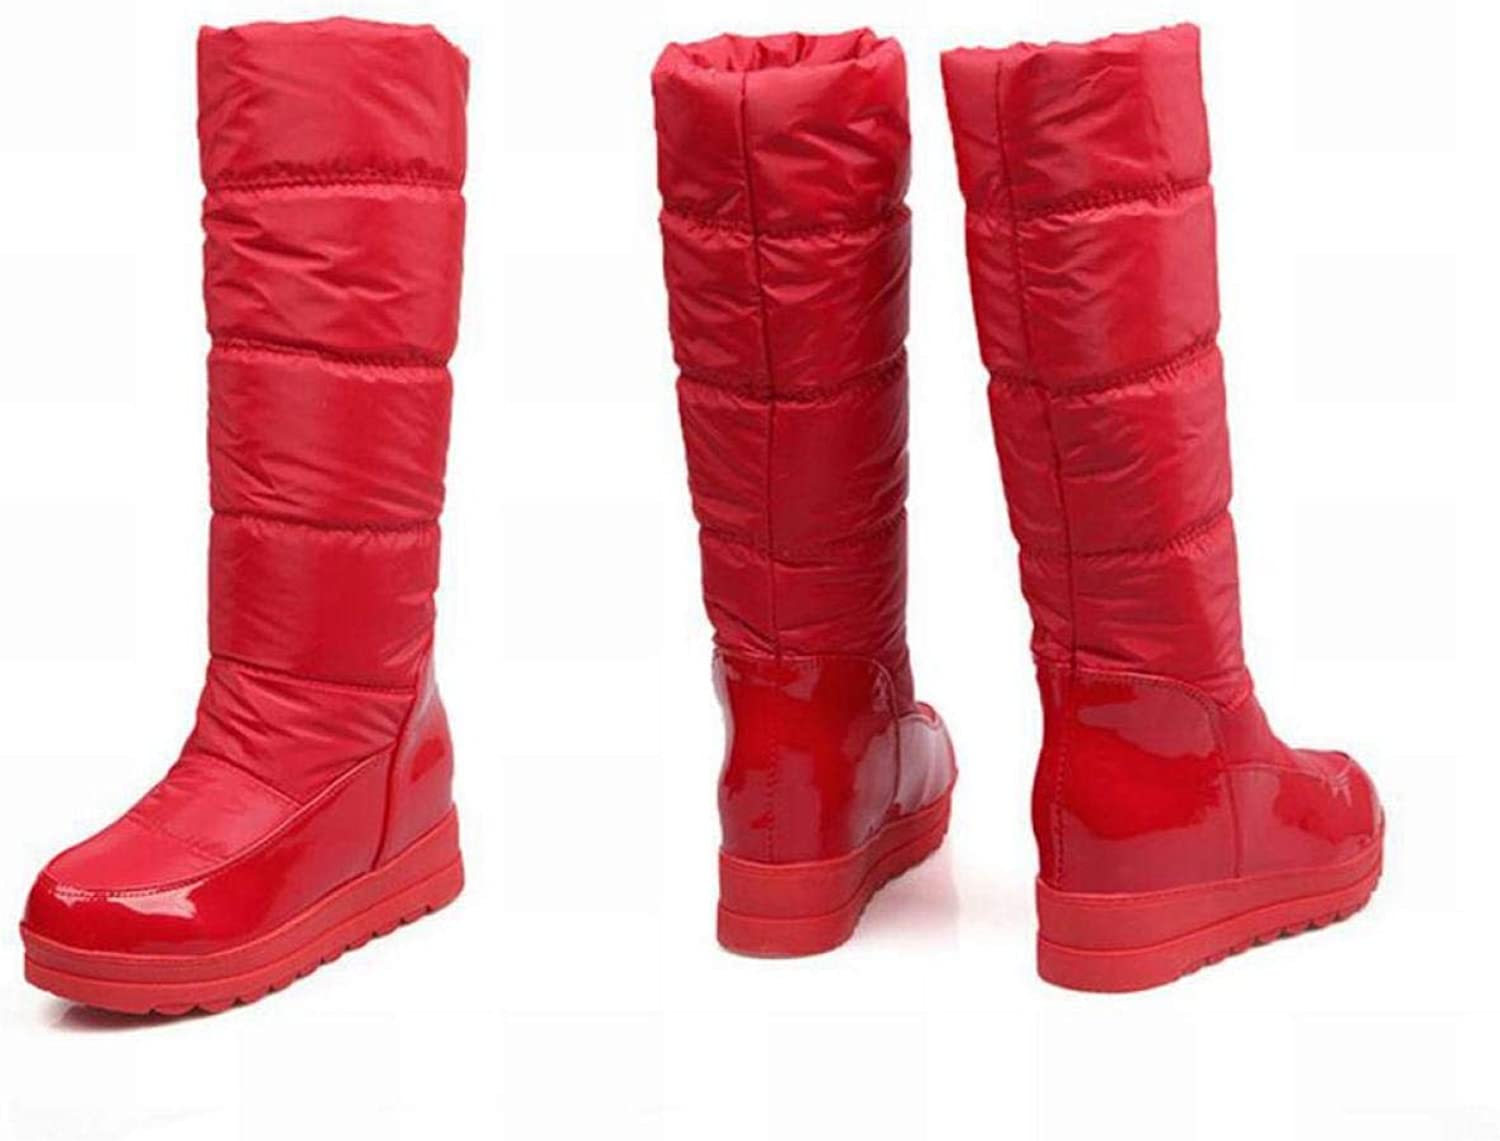 Women's Boots - Winter Warm Anti-Skiing Boots Heightening Boots Knight Boots 34-40